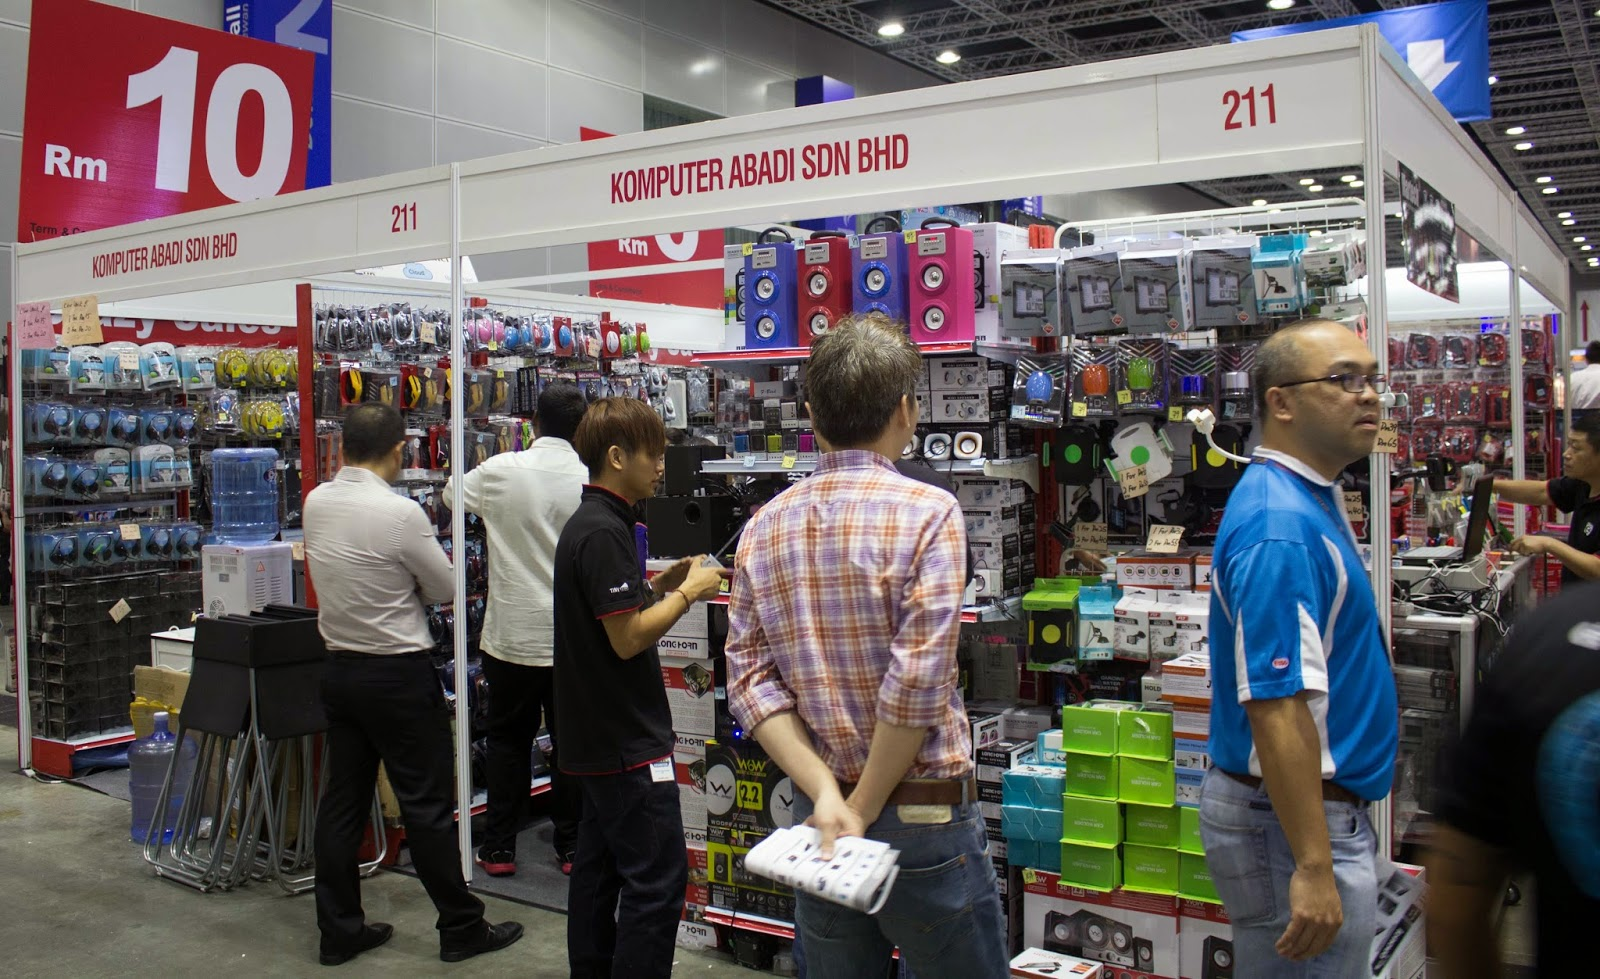 Coverage of PIKOM PC Fair 2014 @ Kuala Lumpur Convention Center 314